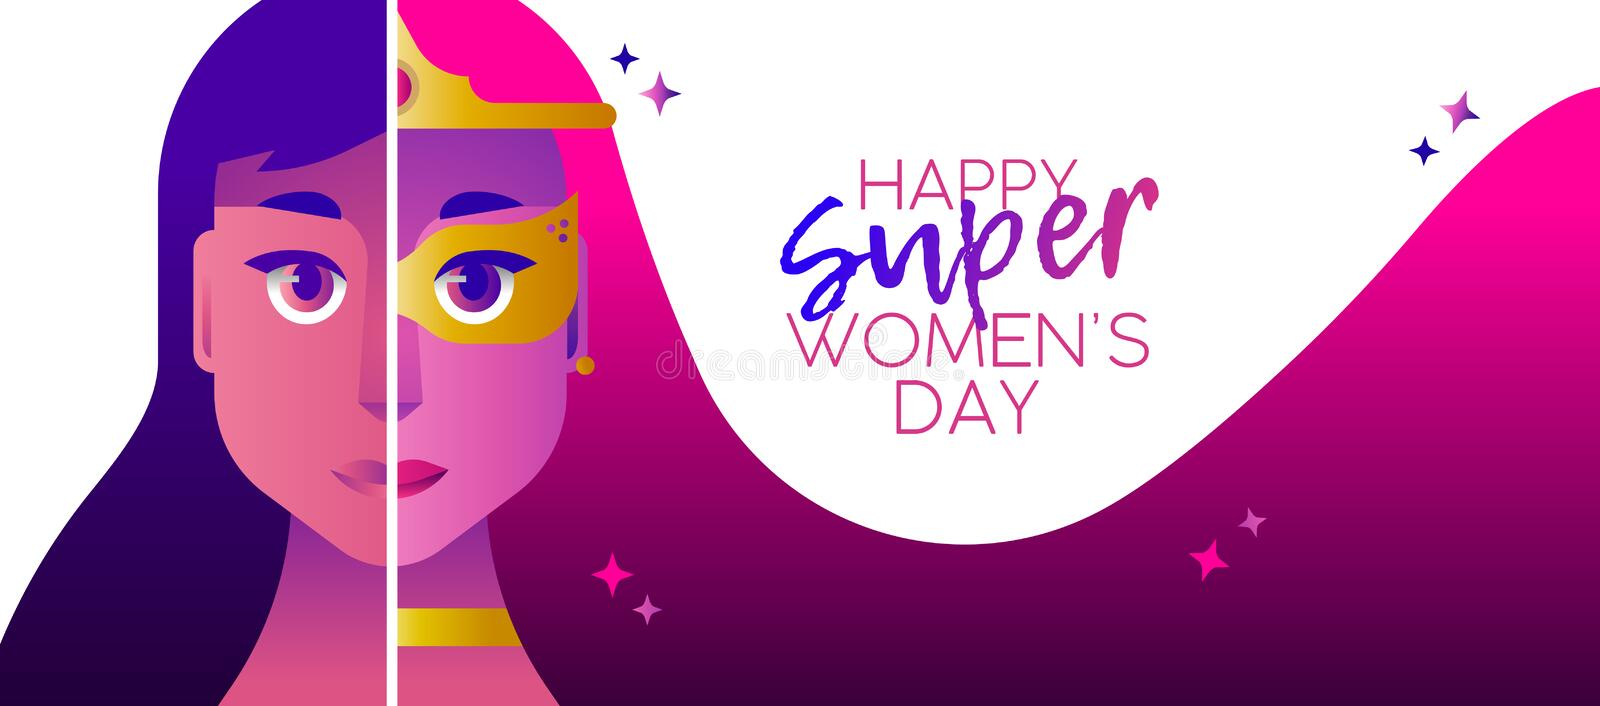 Superhero women`s day 2018 heroine concept banner. Happy Woman`s Day illustration, superhero girl concept with hero woman face costume and celebration typography stock illustration